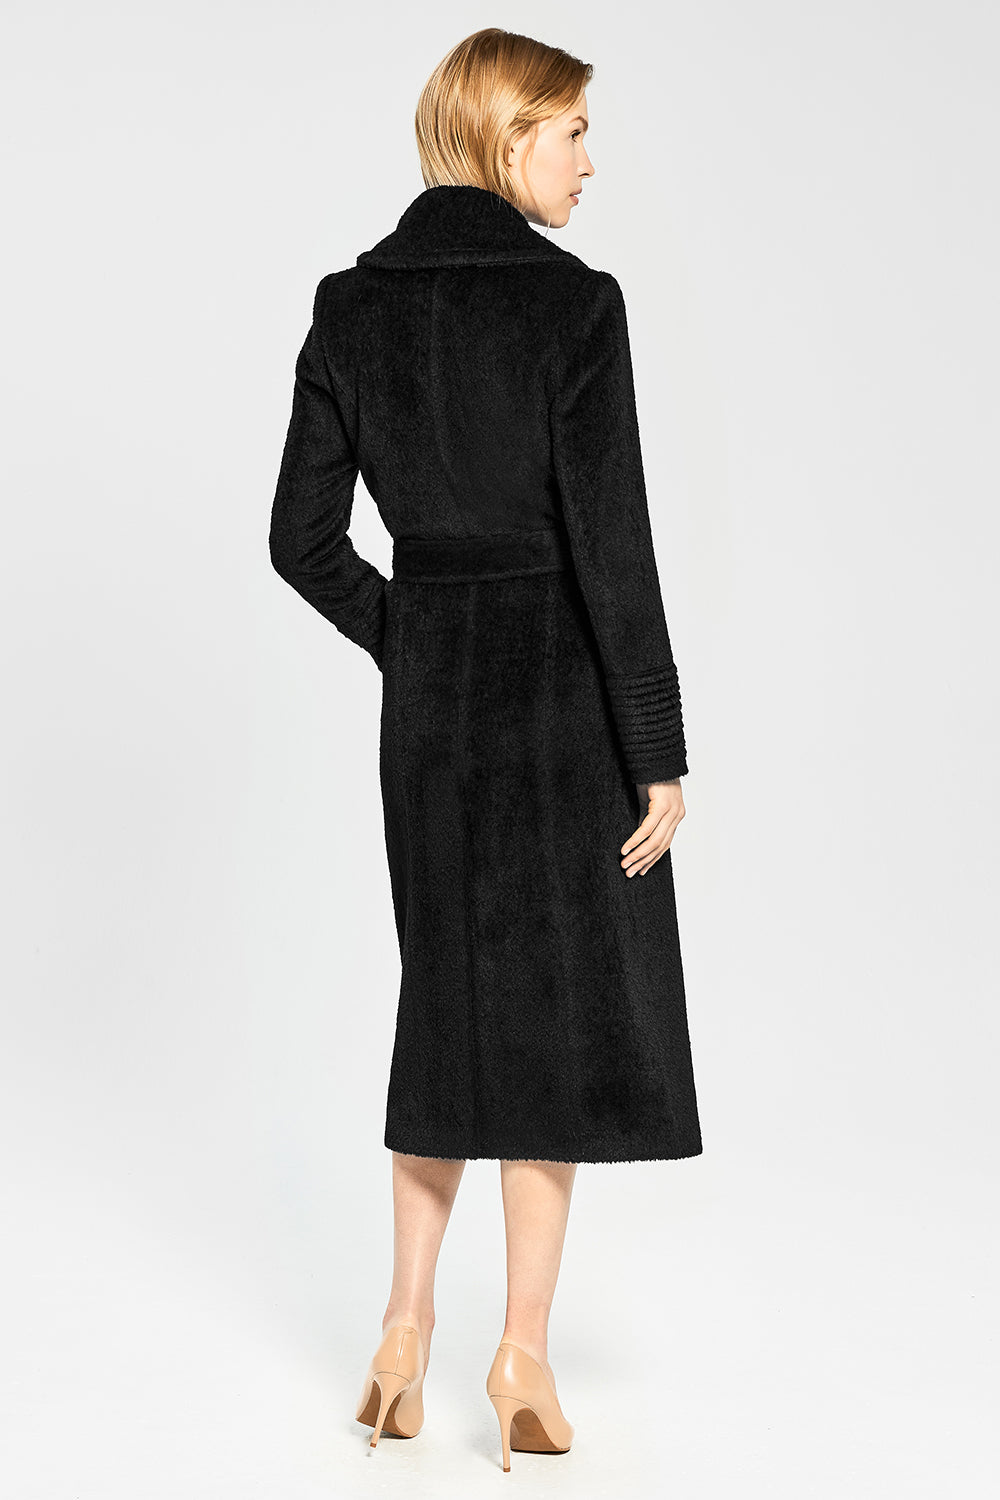 Sentaler Bouclé Alpaca Long Notched Collar Wrap Coat featured in Bouclé Alpaca and available in Black. Seen from back.